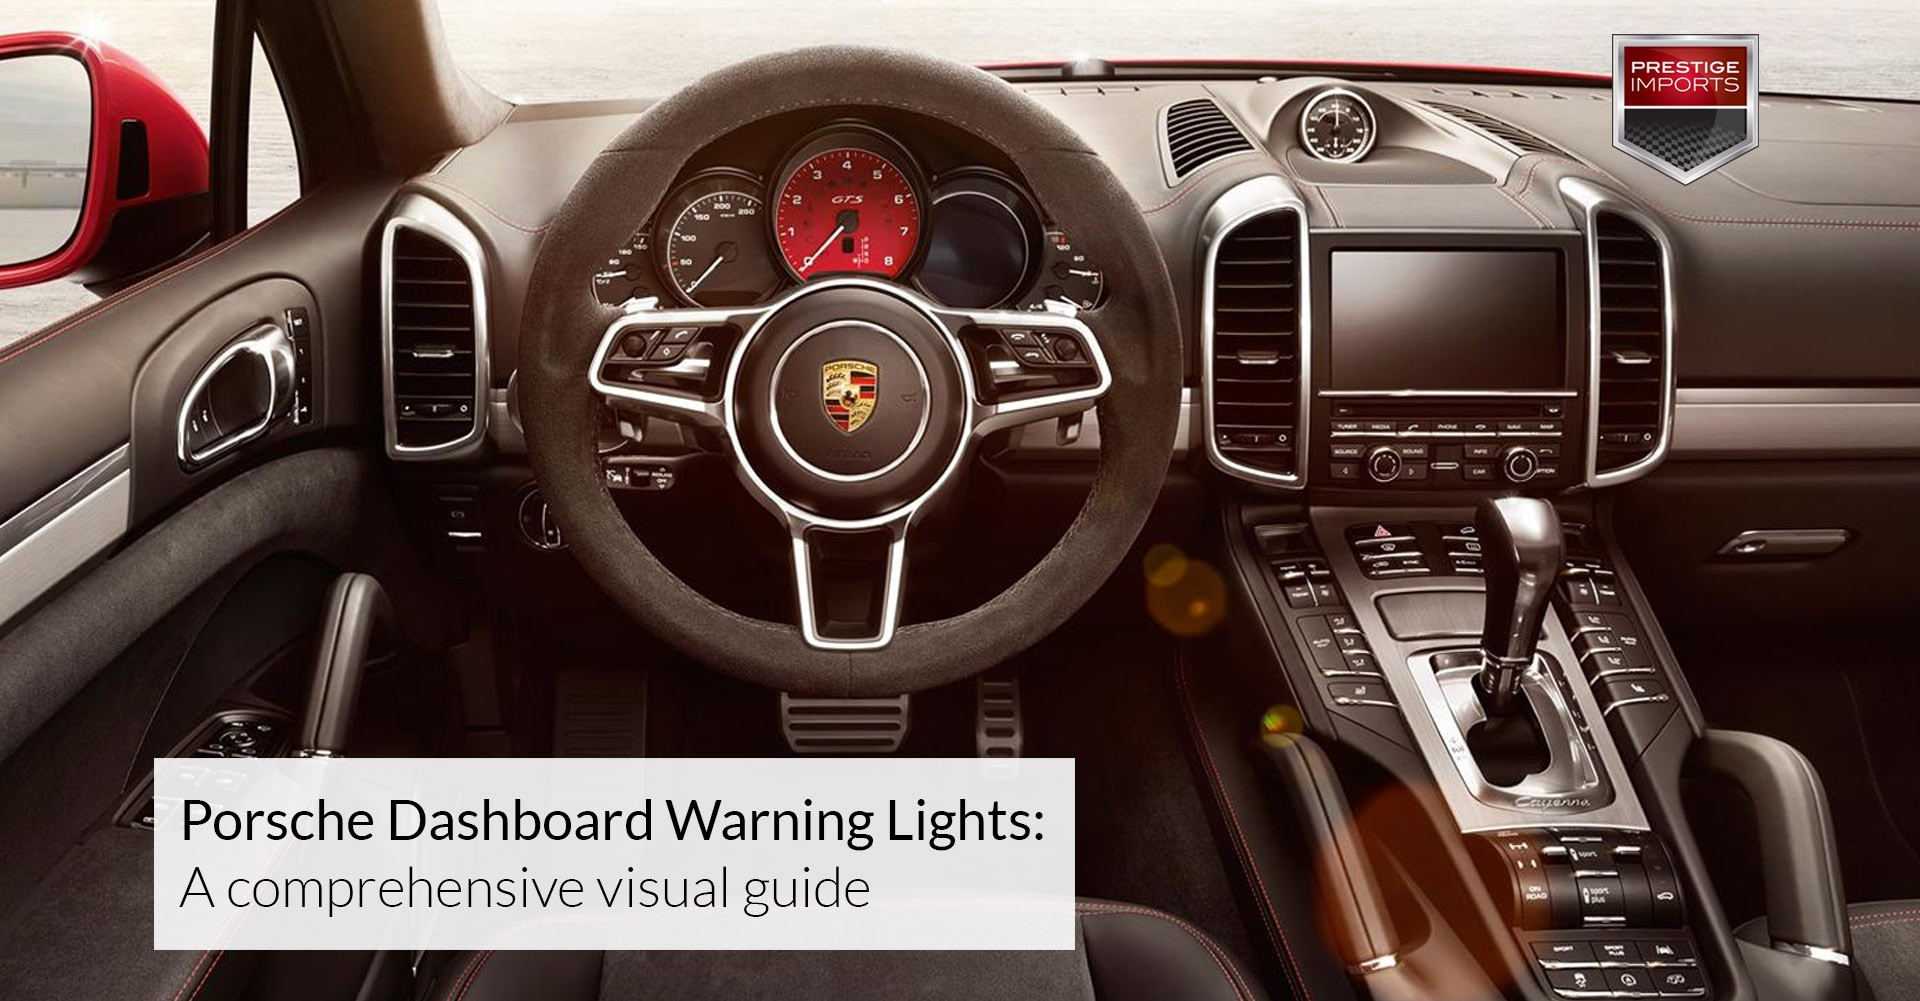 Porsche 911 Engine Diagram Porsche Dashboard Warning Lights A Prehensive Visual Guide Of Porsche 911 Engine Diagram